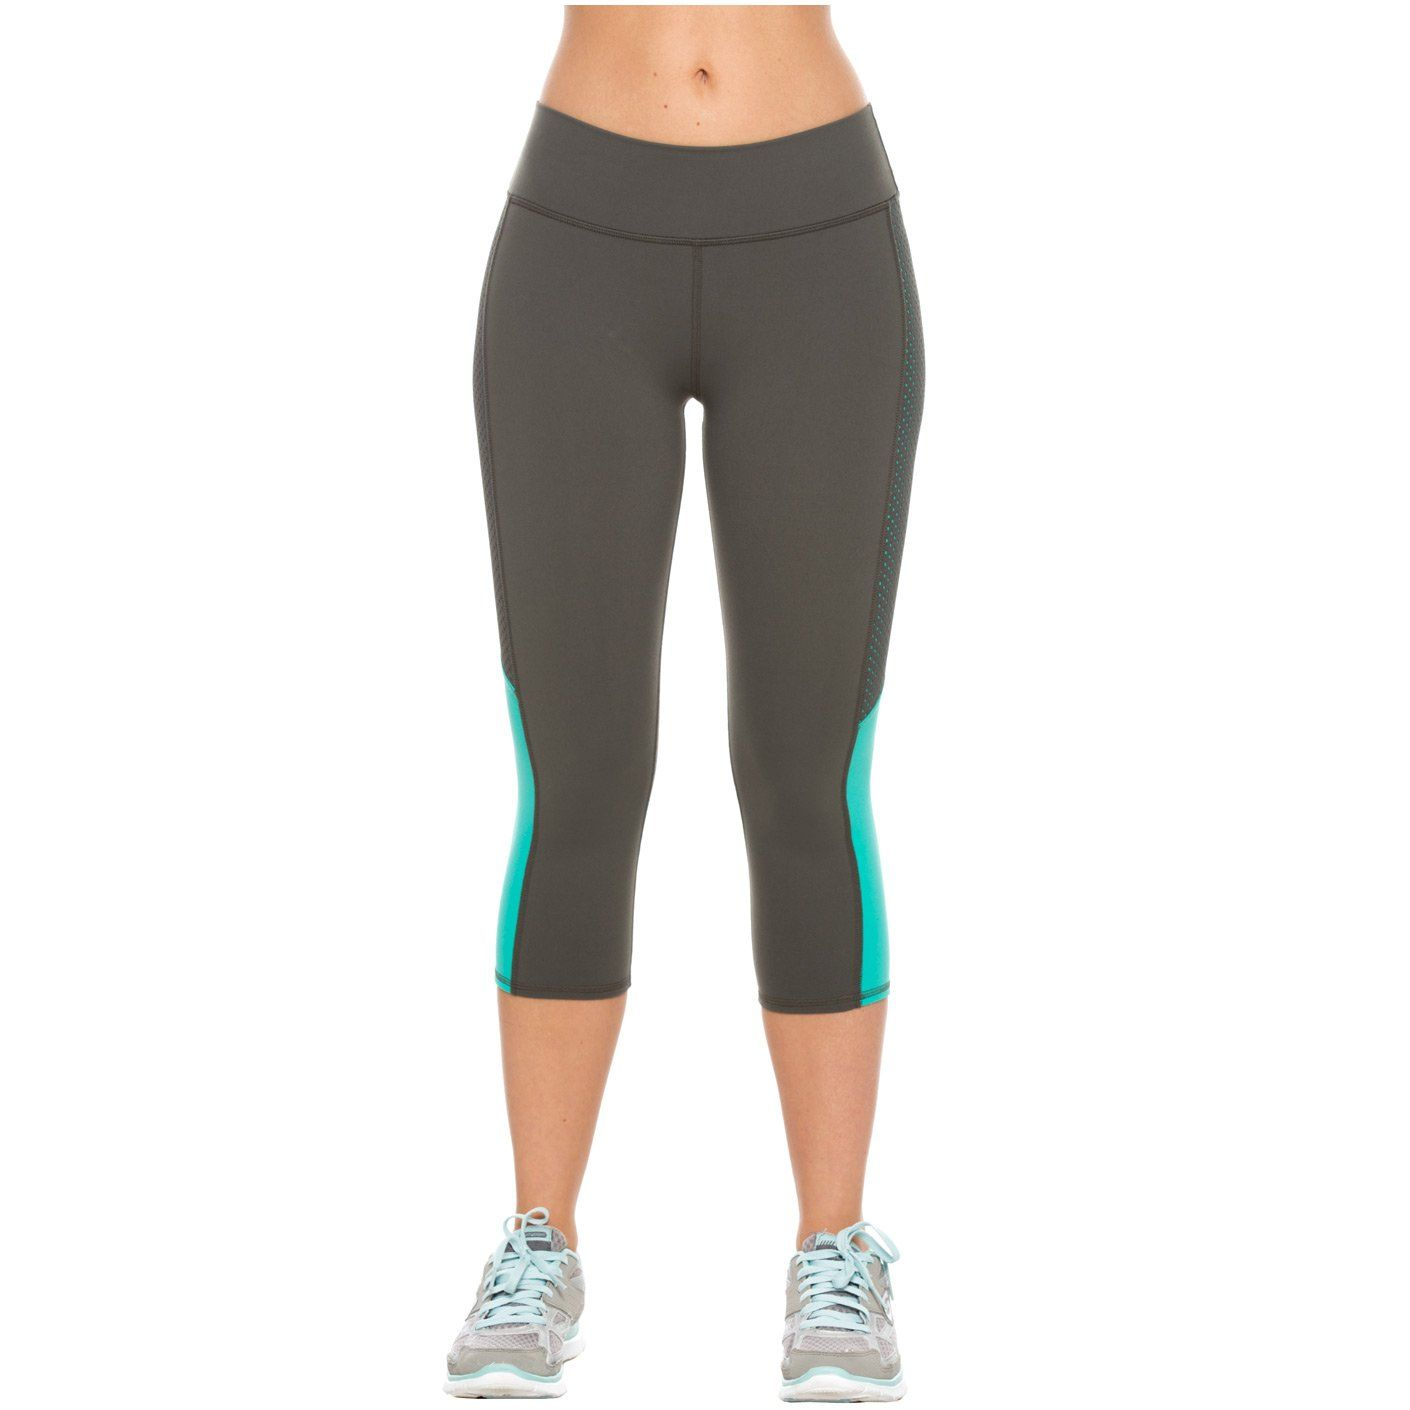 Activewear Womens Mid Rise Workout Slimming Capri Leggings with Tummy Control - L / Gray-Mint